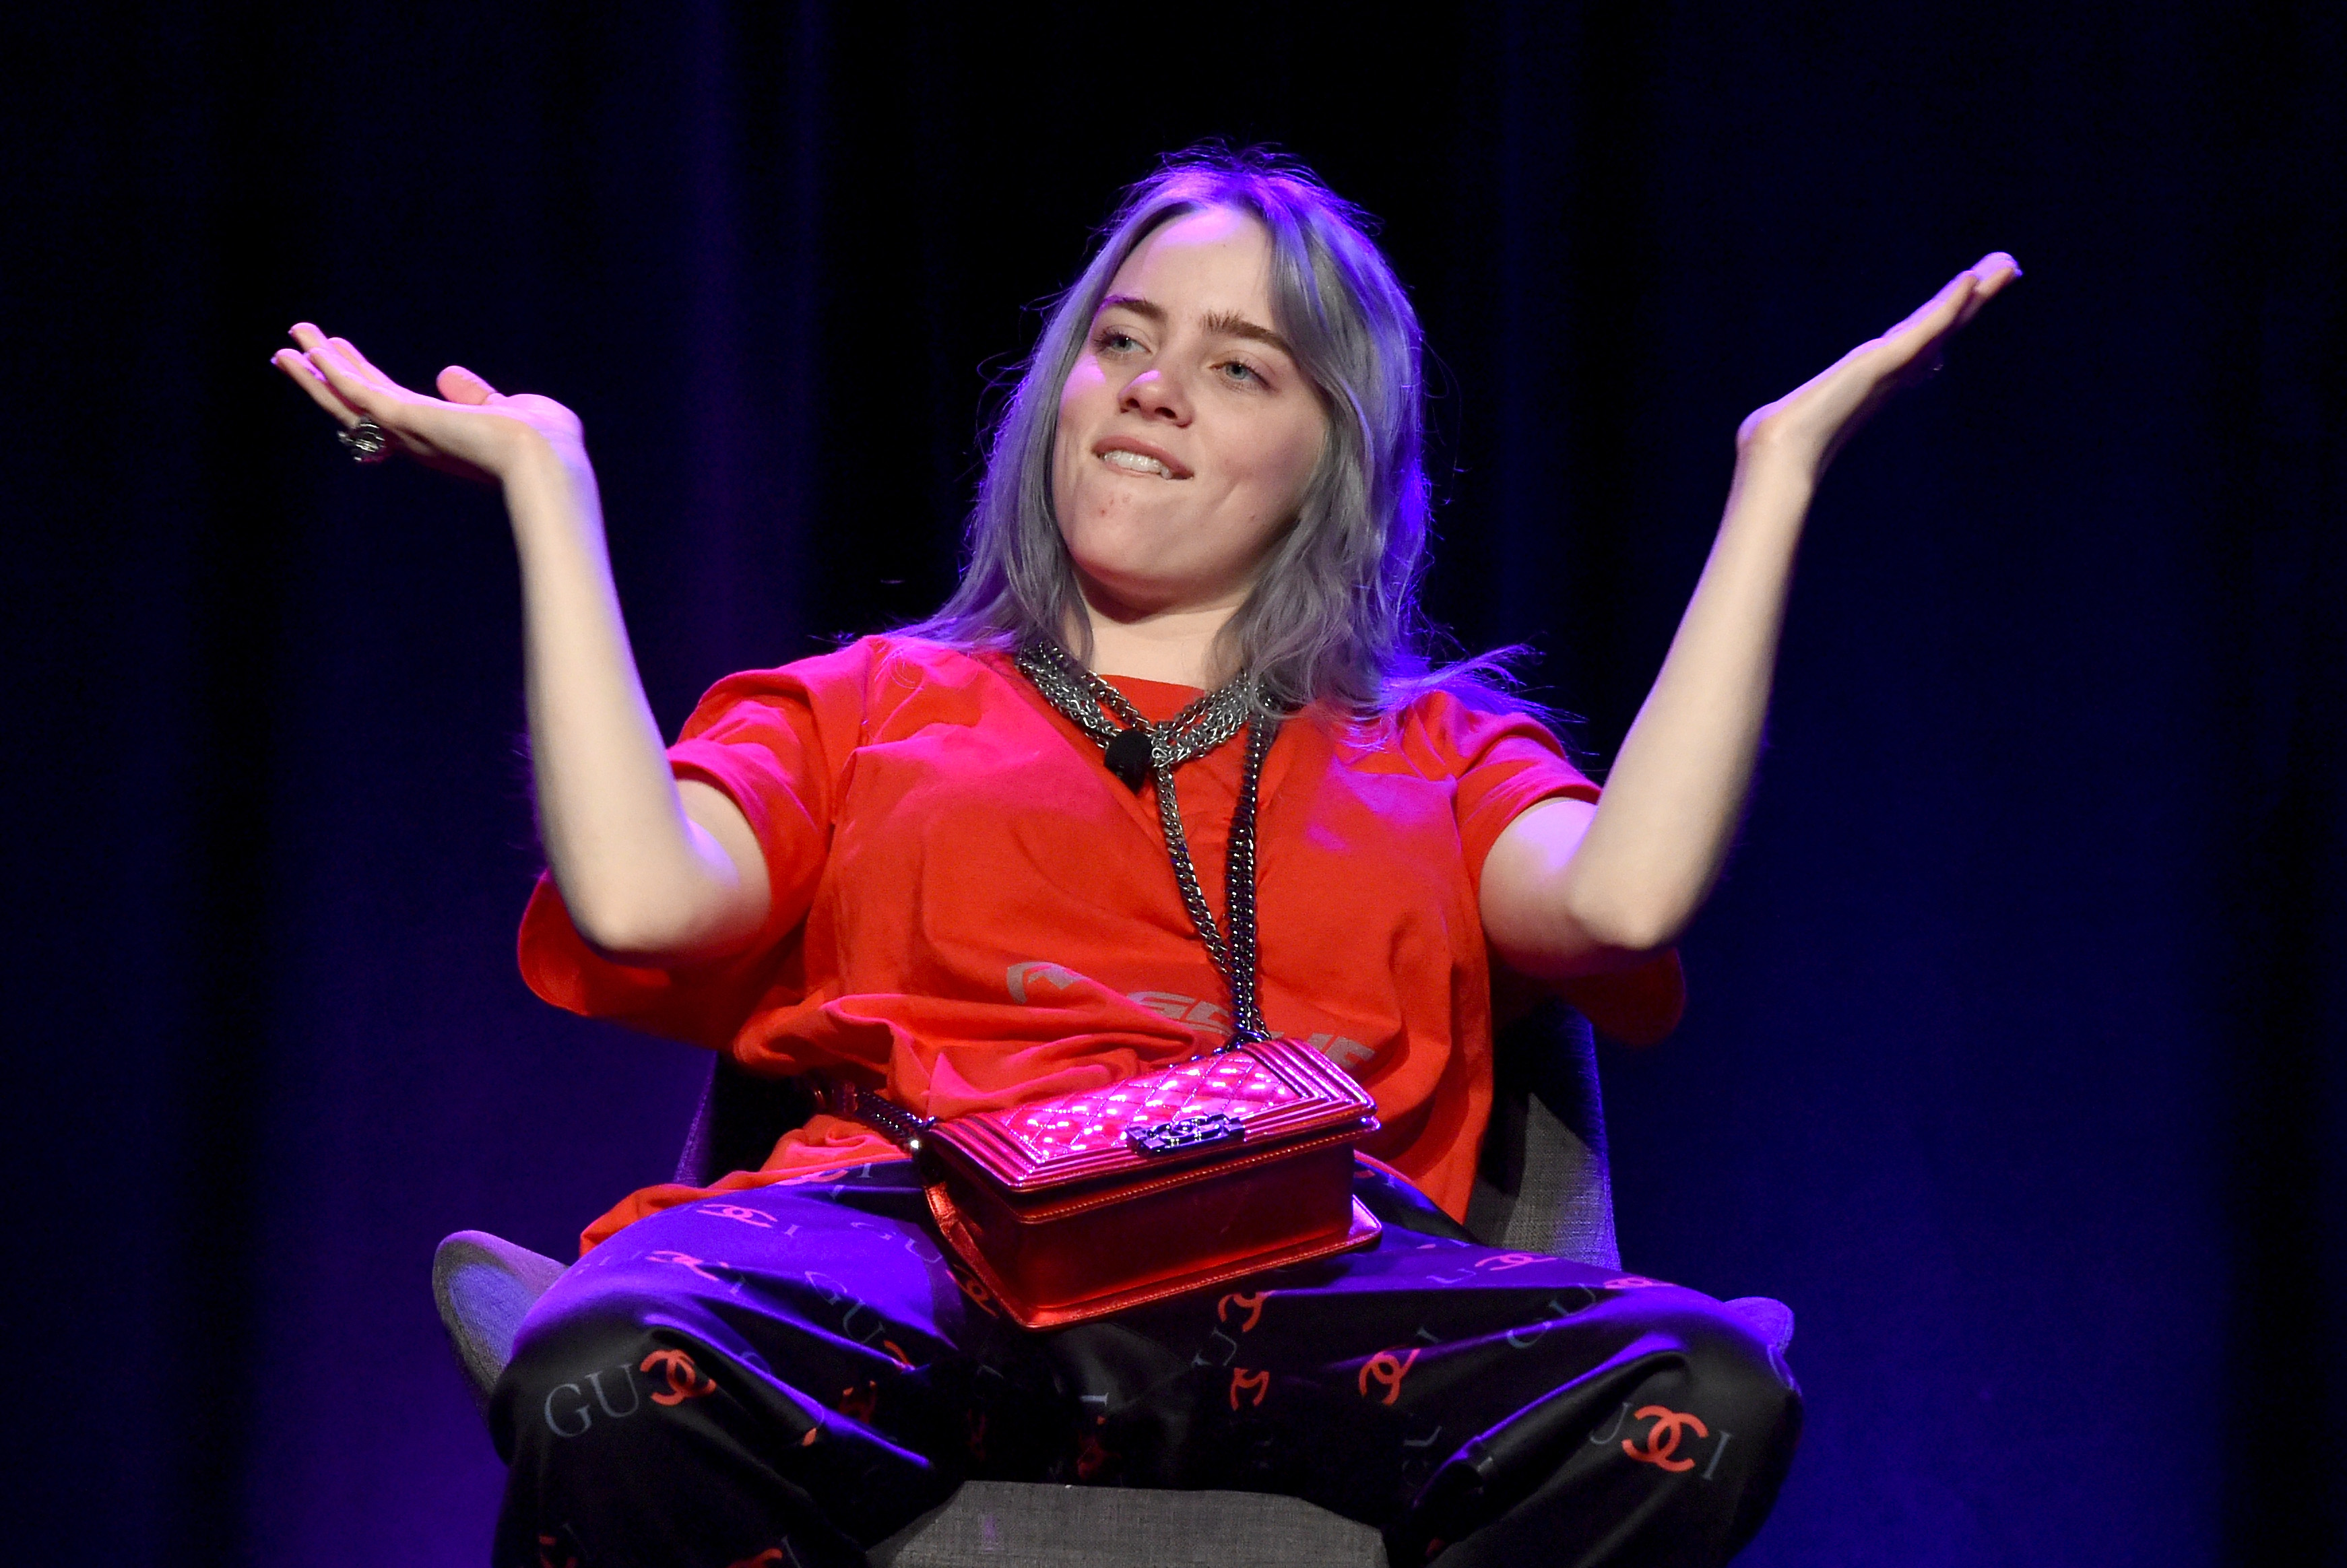 """HOLLYWOOD, CA - MAY 08:  Singer/Songwriter Billie Eilish speaks onstage at the 'Billie Eilish and Finneas O'Connell in Conversation' panel at The 2018 ASCAP """"I Create Music"""" EXPO at Loews Hollywood Hotel on May 8, 2018 in Hollywood, California.  (Photo by Lester Cohen/Getty Images for ASCAP)"""